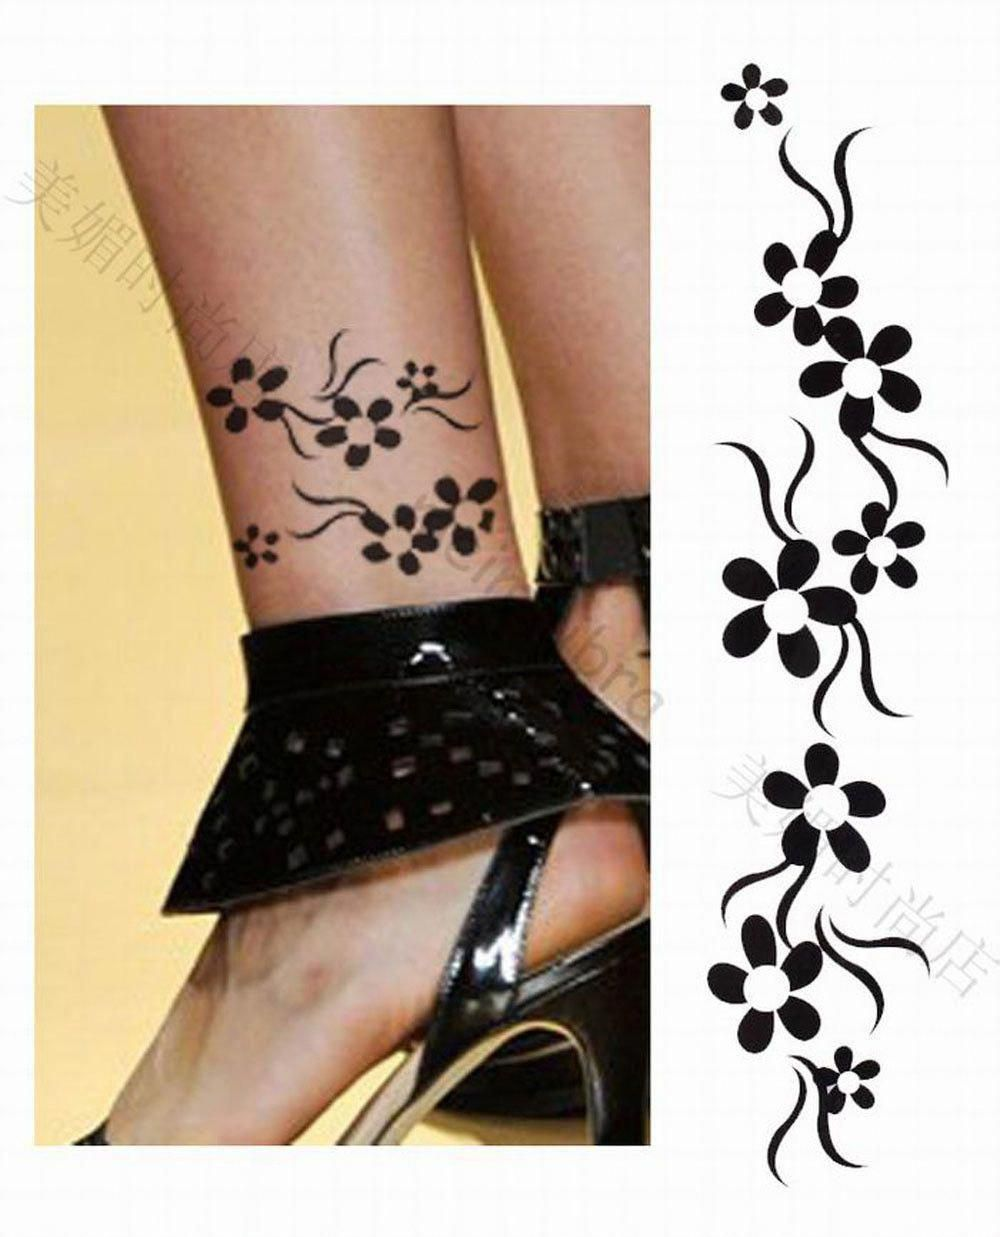 tattooremoval tattooremovallaser Temporary tattoos